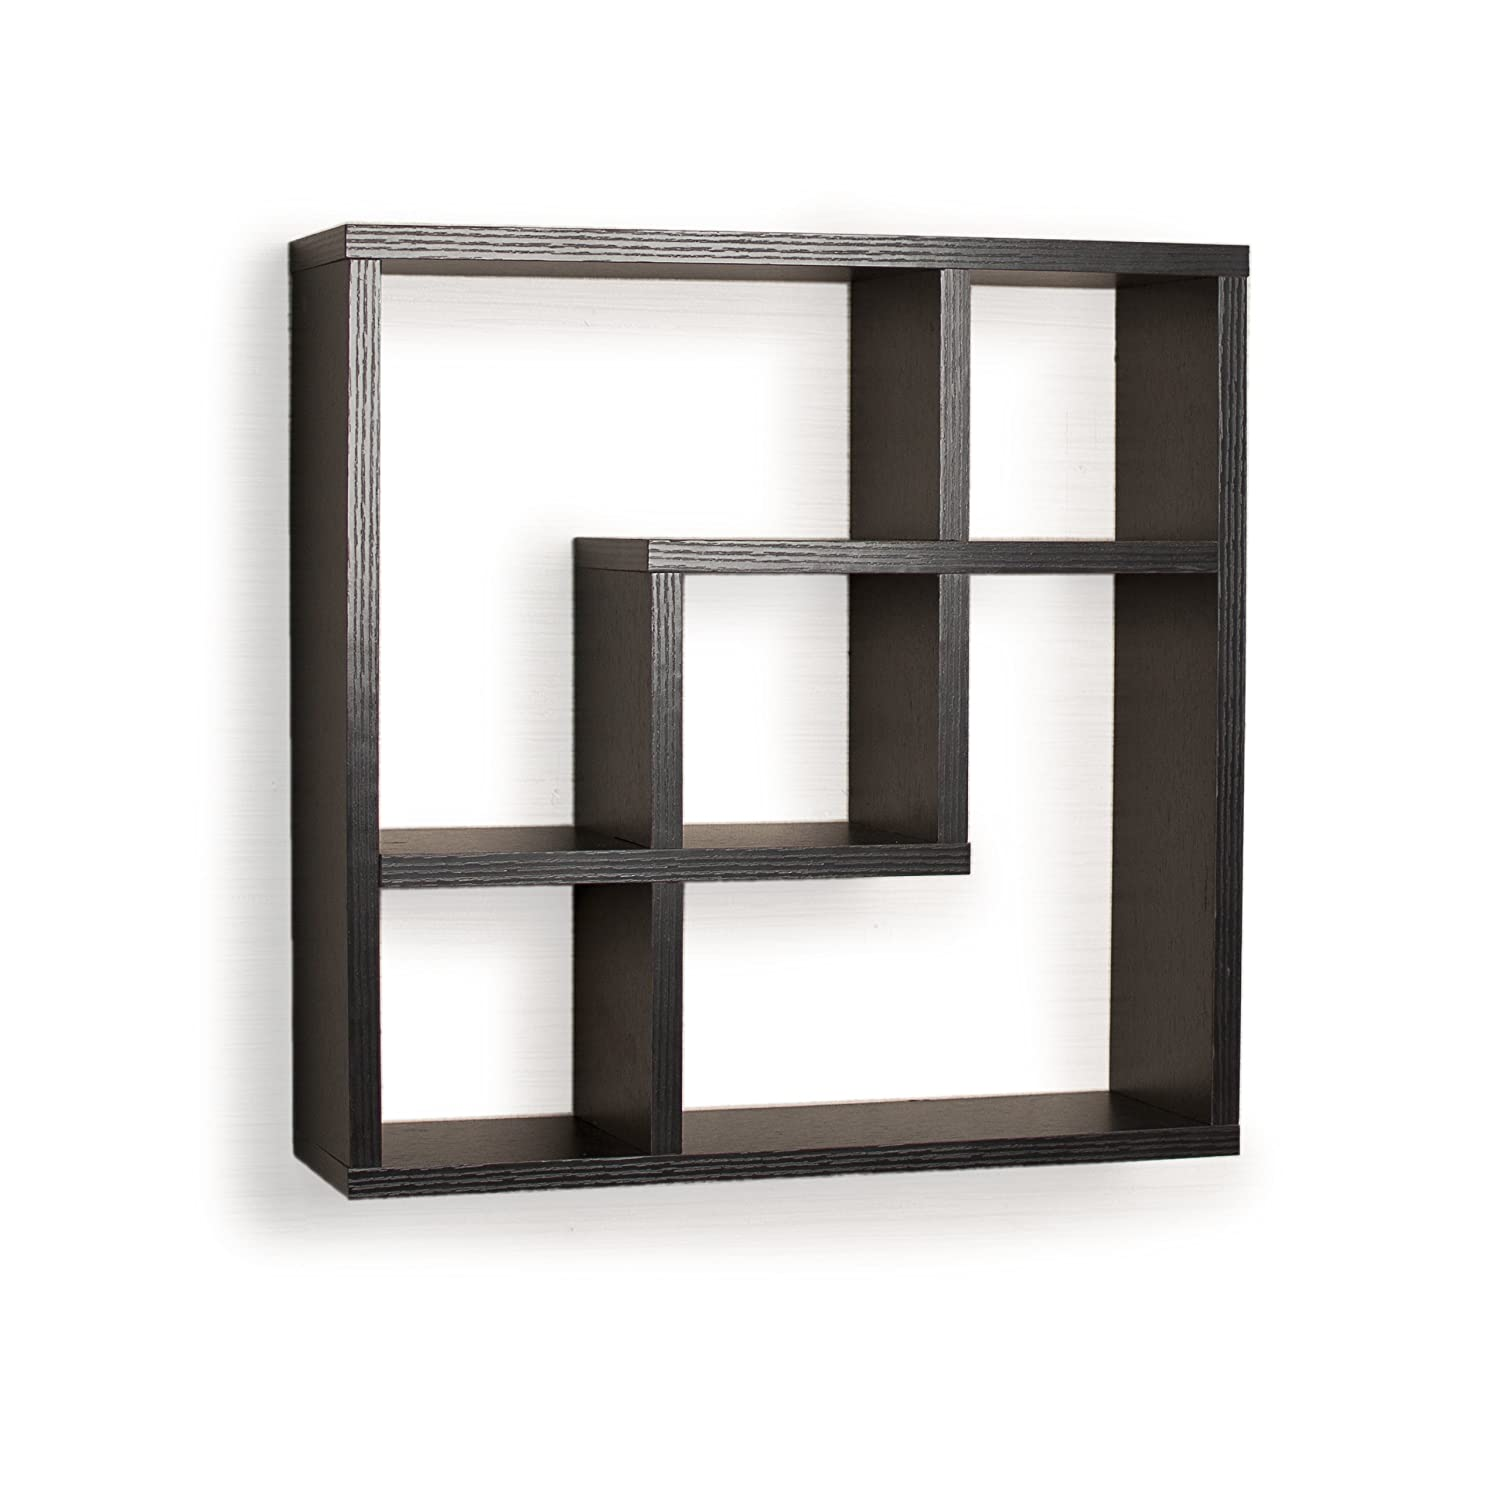 Amazon geometric square wall shelf with 5 openings home amazon geometric square wall shelf with 5 openings home kitchen amipublicfo Gallery